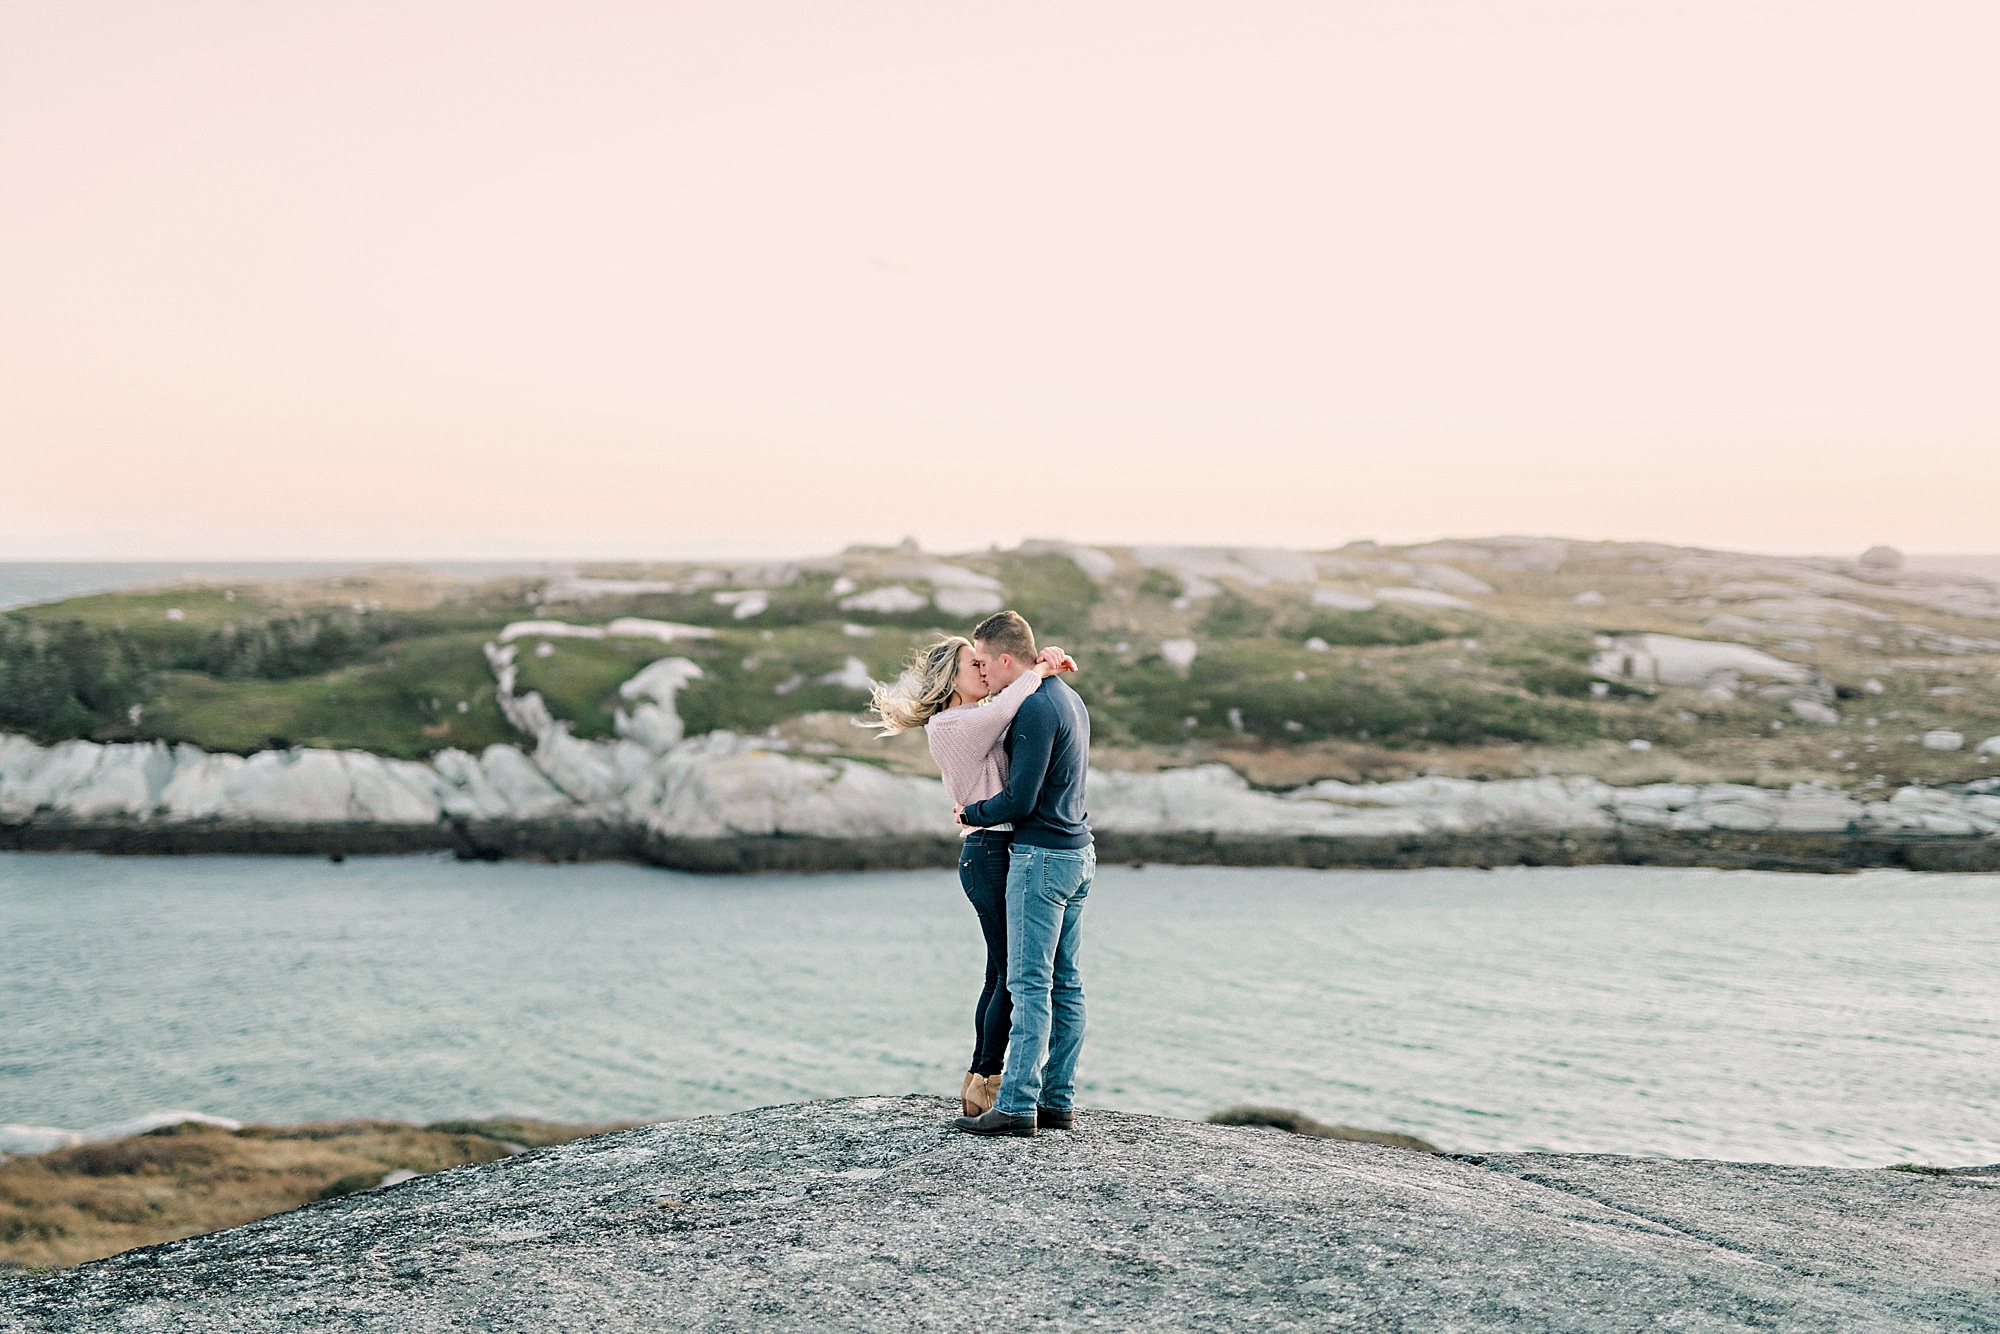 couple standing nose to nose on rocks overlooking pink sky and ocean